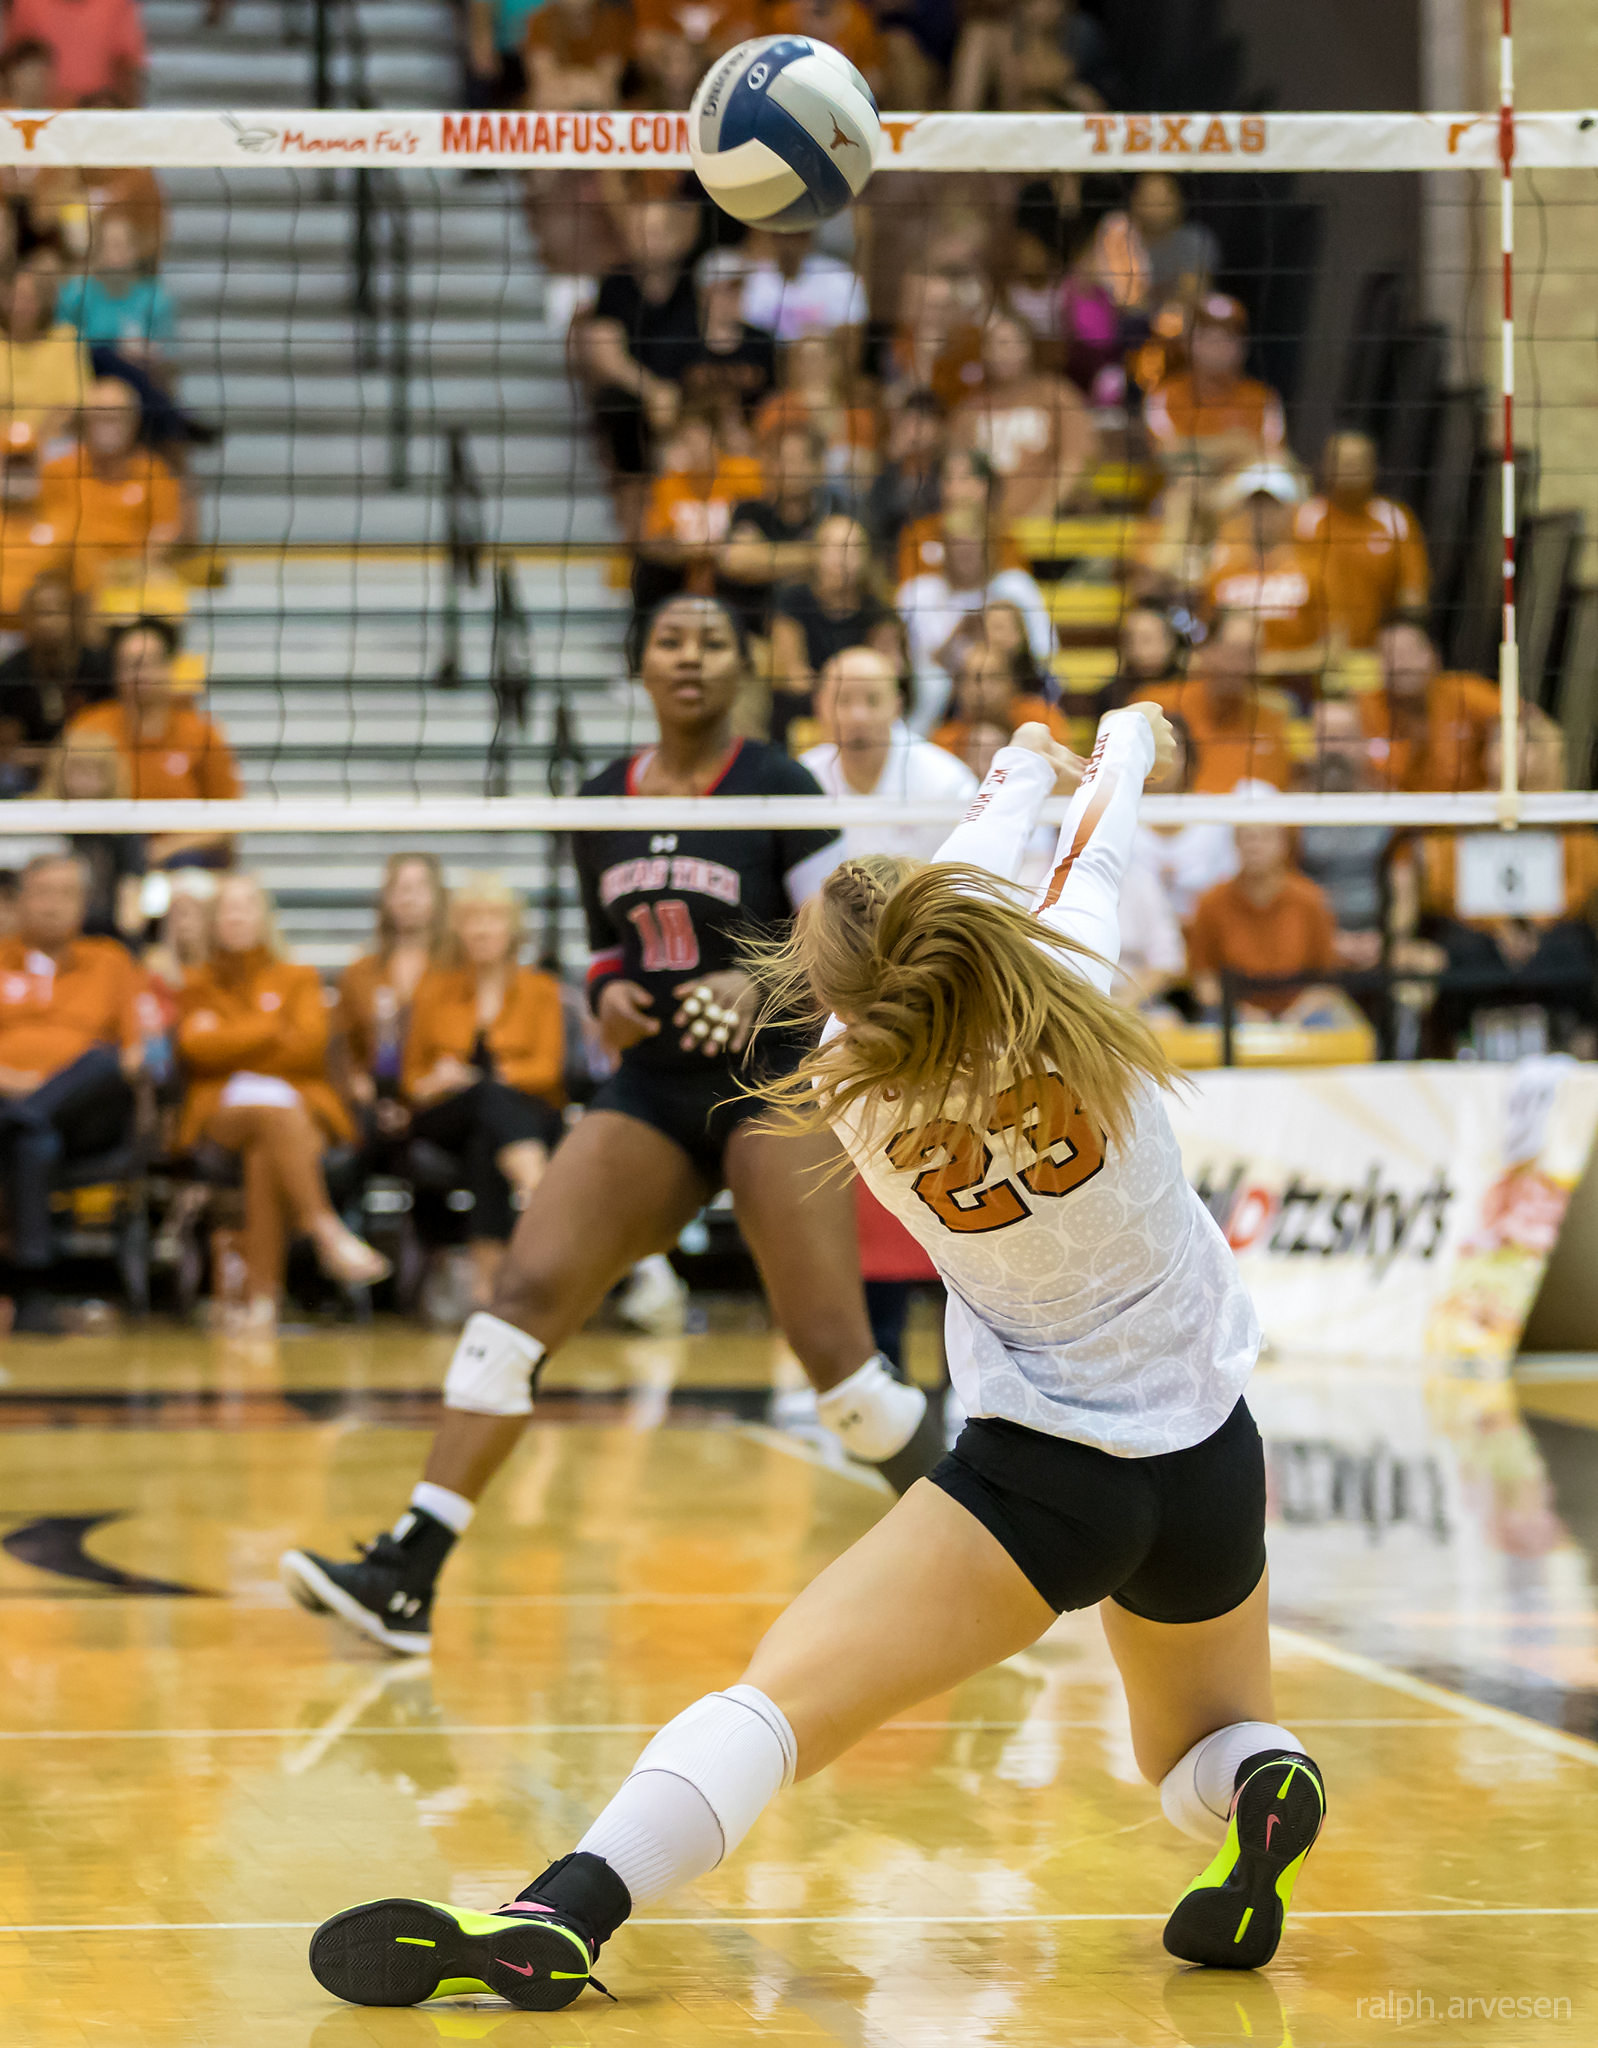 Fundamental skills of volleyball digging means to sink your hips low to the floor and you use your extended arms in your platform to